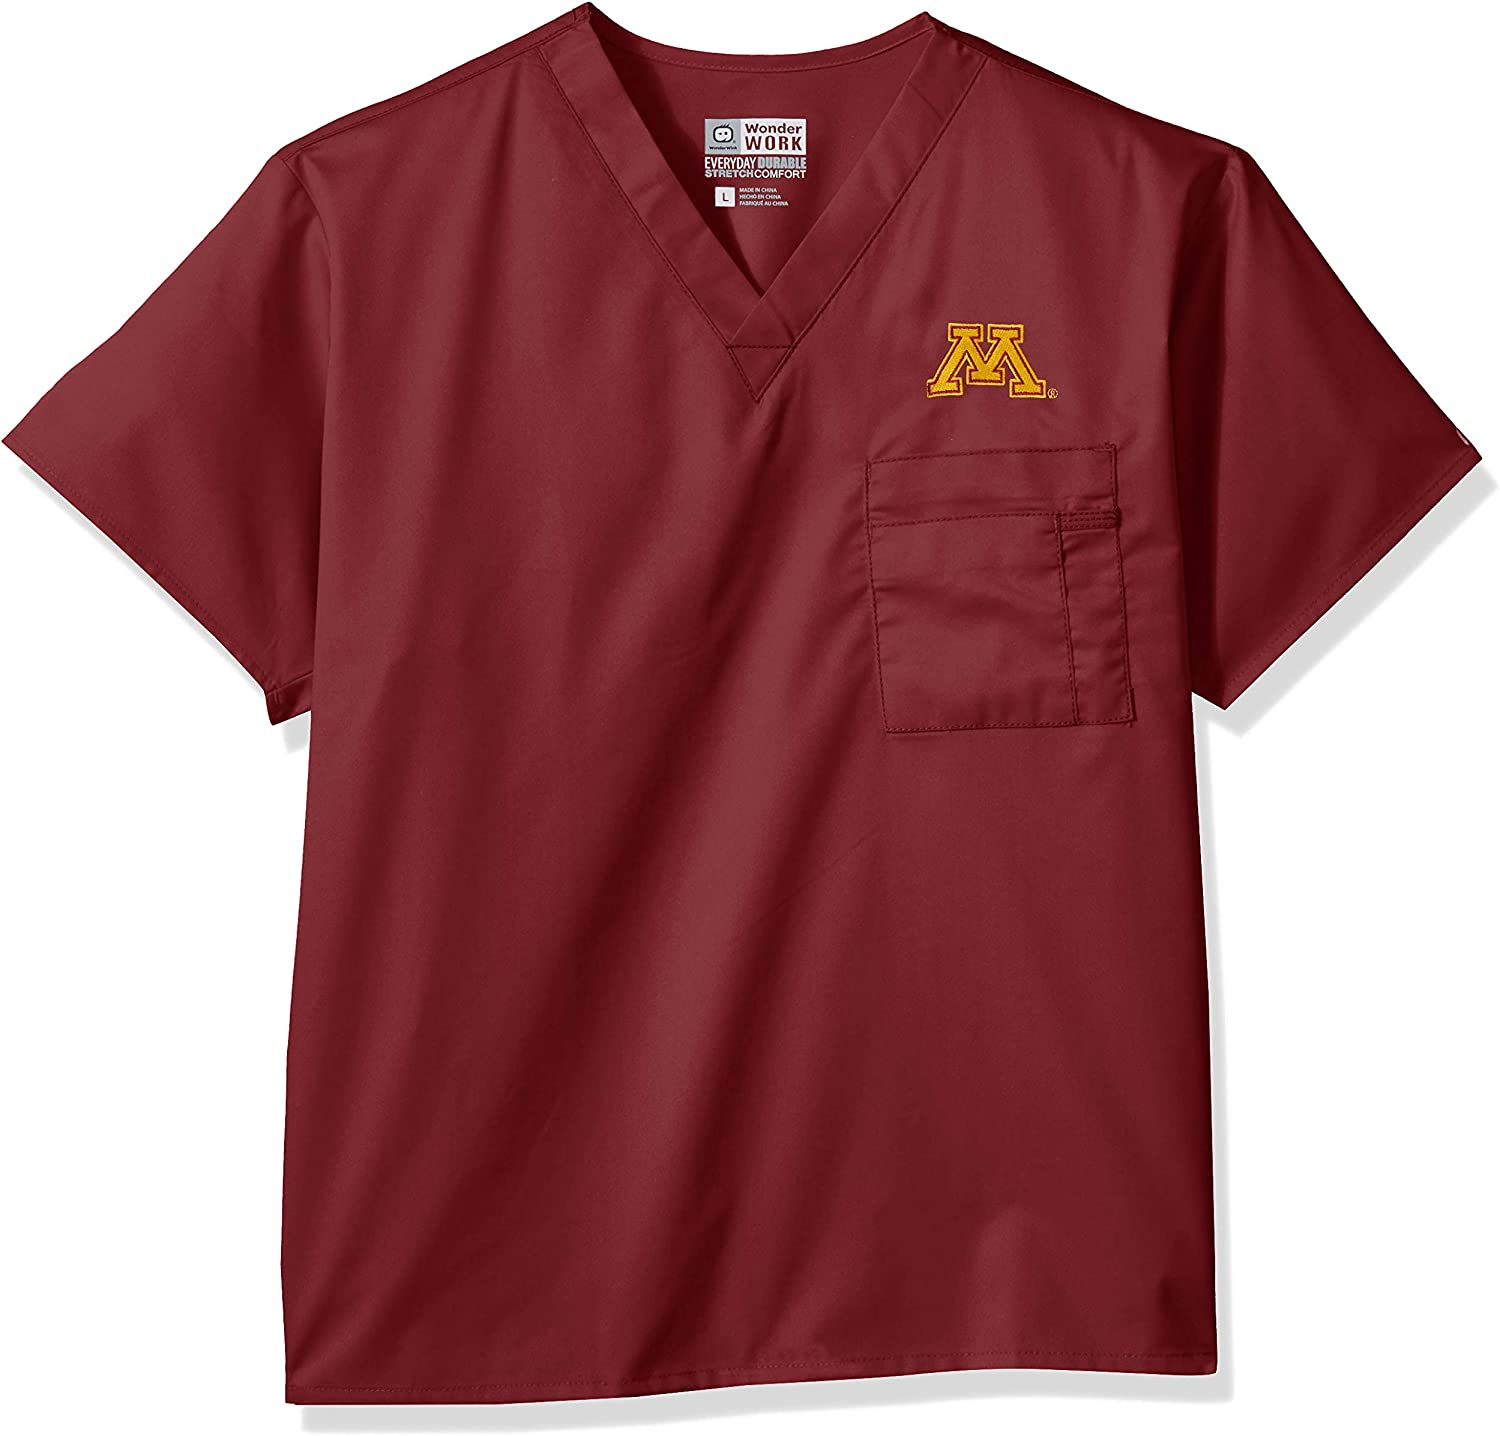 WONDERWINK UnisexAdult University of Minnesota VNeck Top Medical Scrubs Shirt